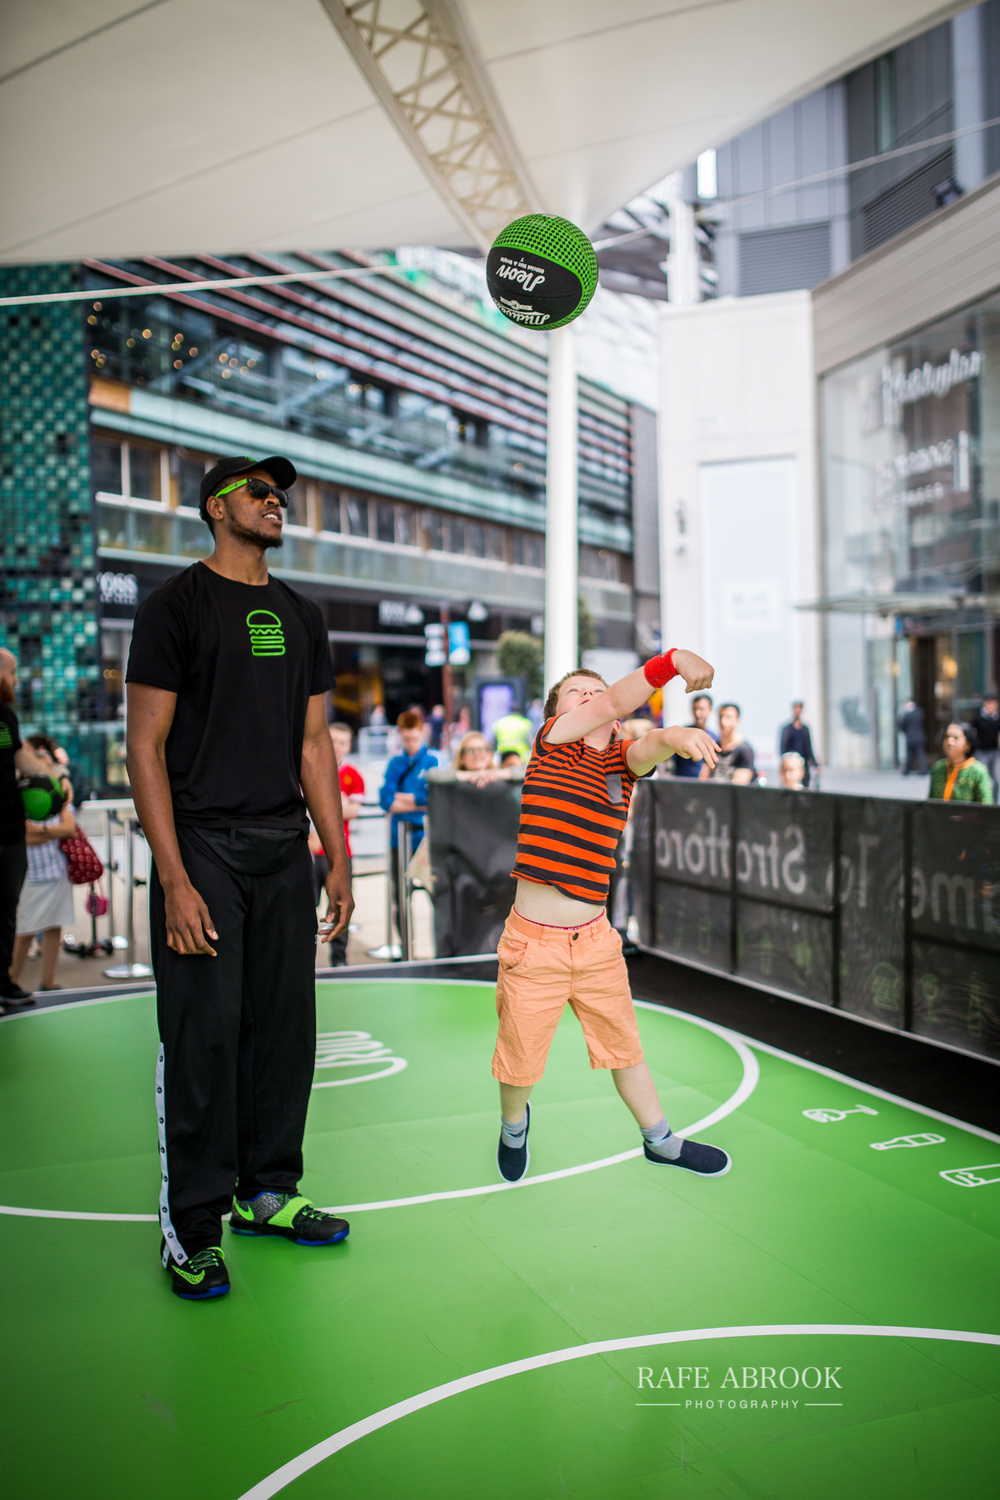 shake shack uk westfield stratford london experiential basketball-1022.jpg